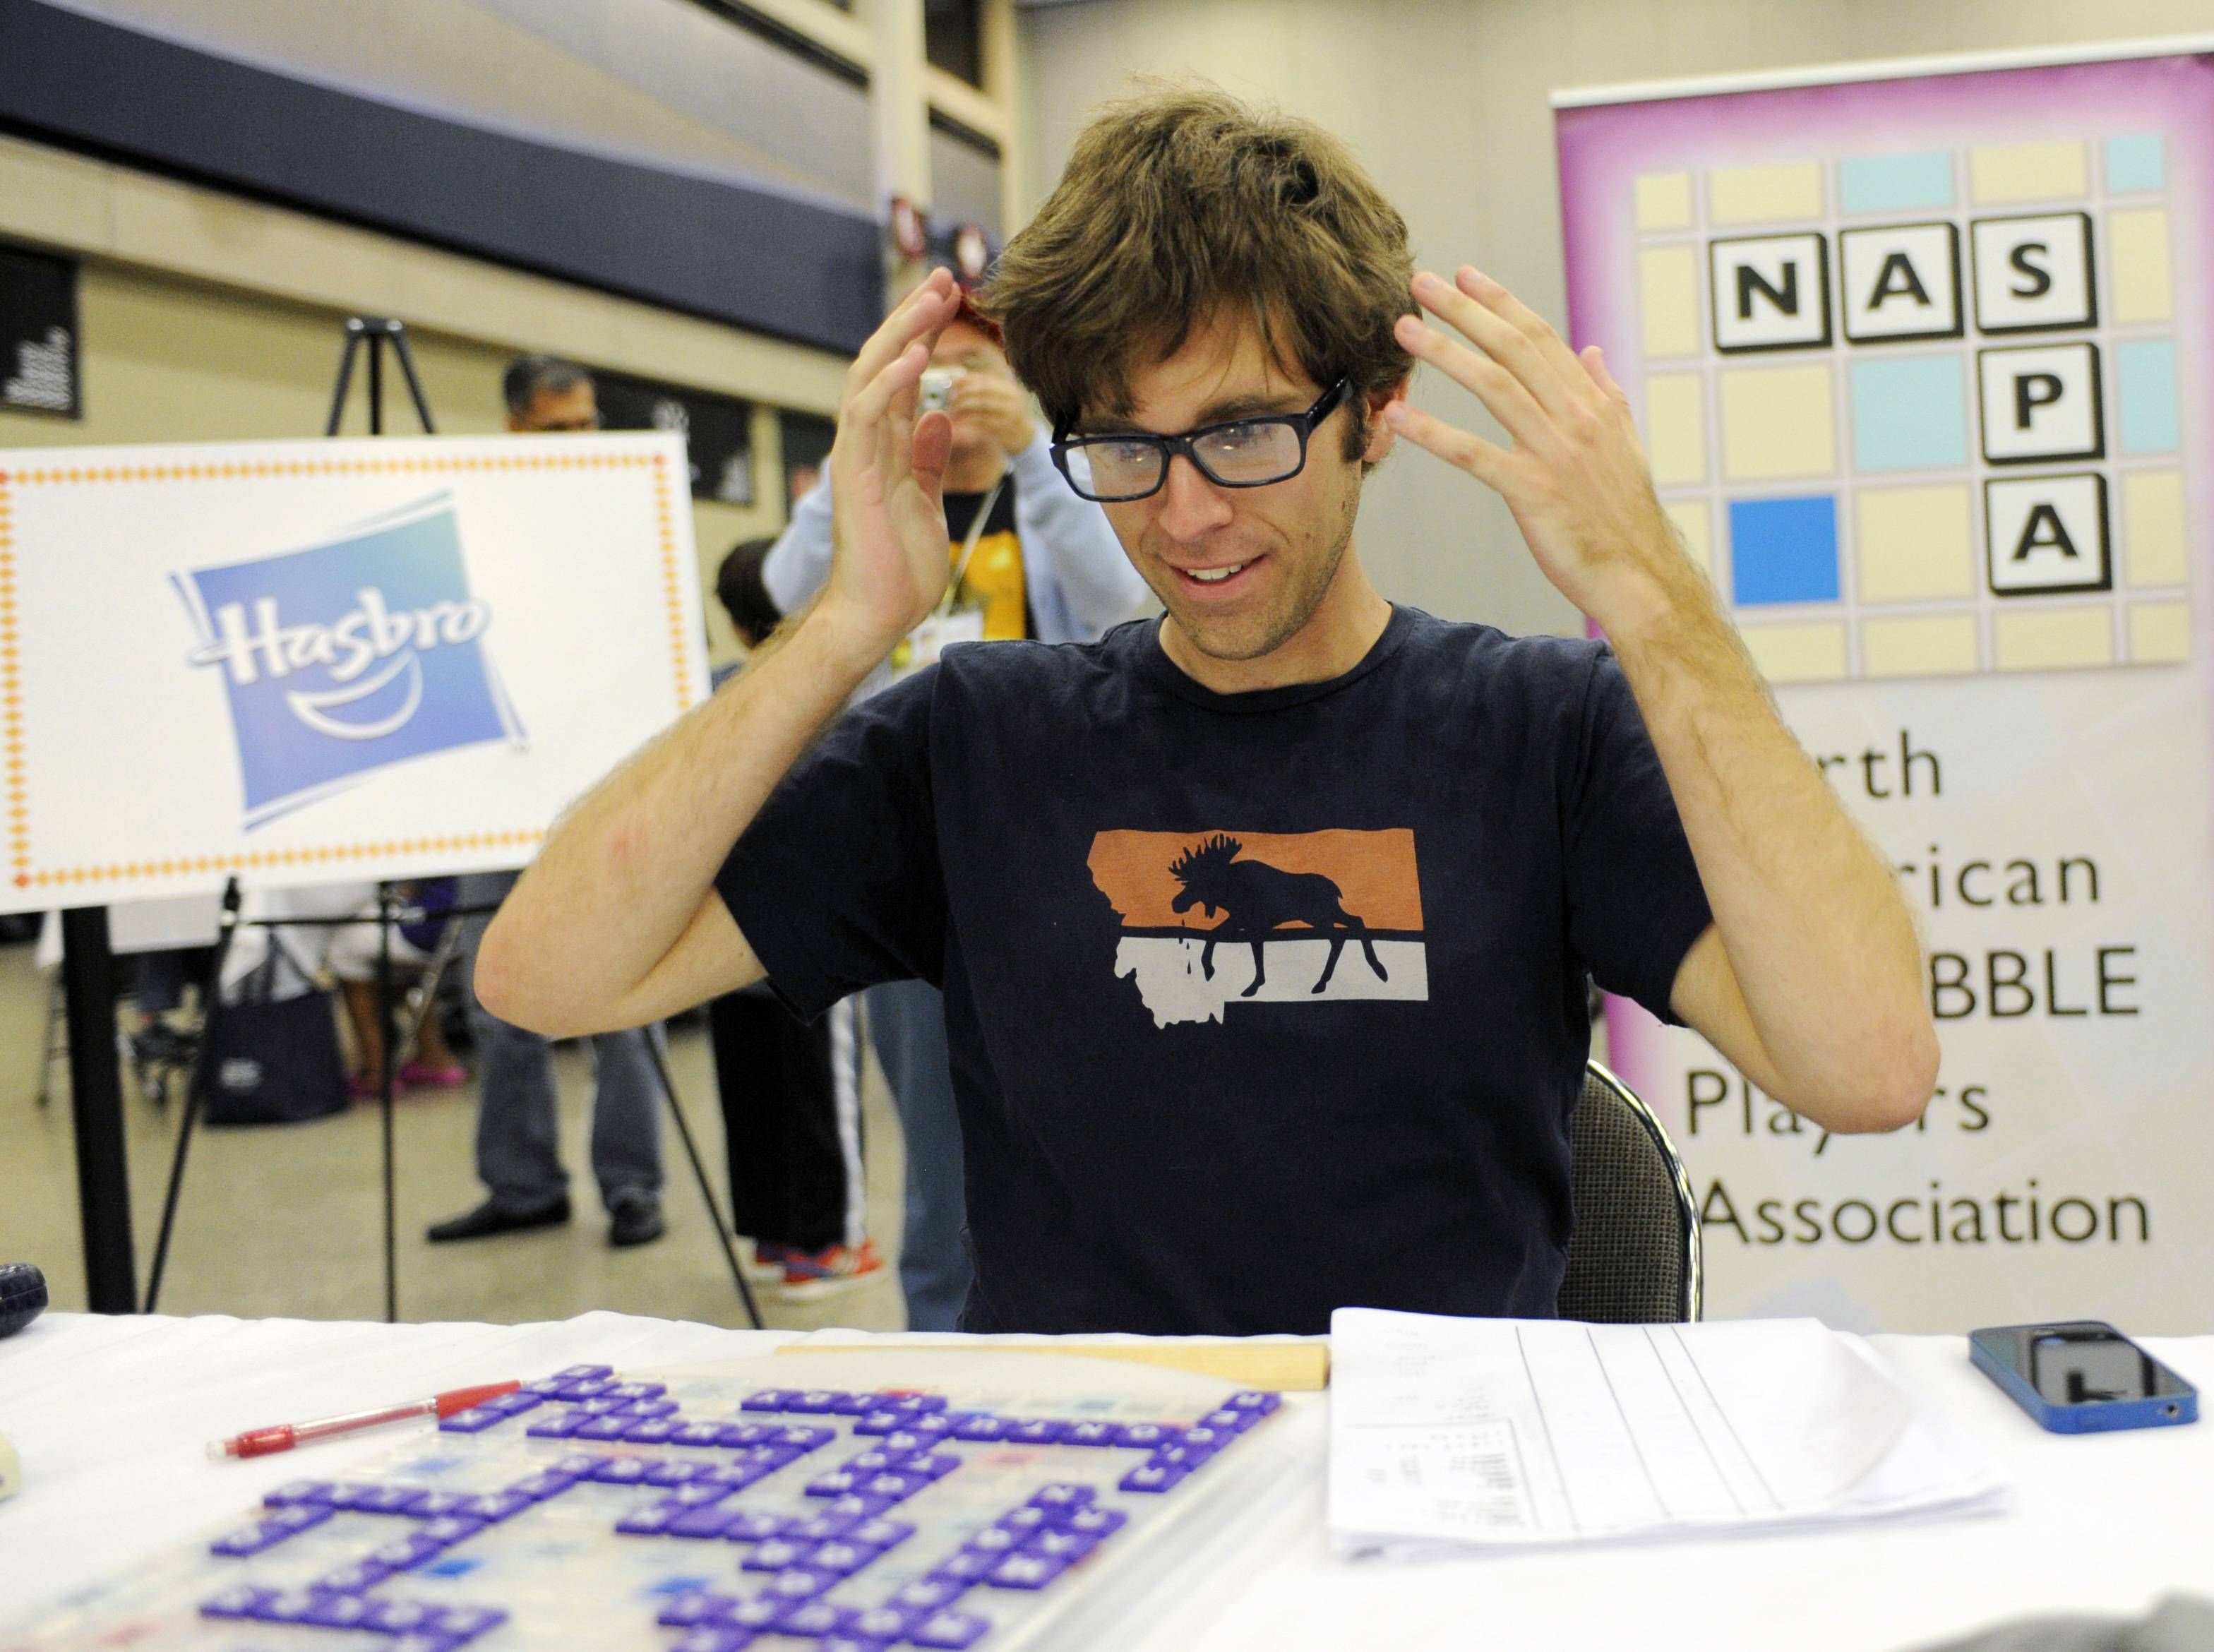 Conrad Bassett-Bouchard reacts after he won the title at the National Scrabble Championships Wednesday in Buffalo, N.Y. He led for most of the match, outscoring his opponent 477-350.